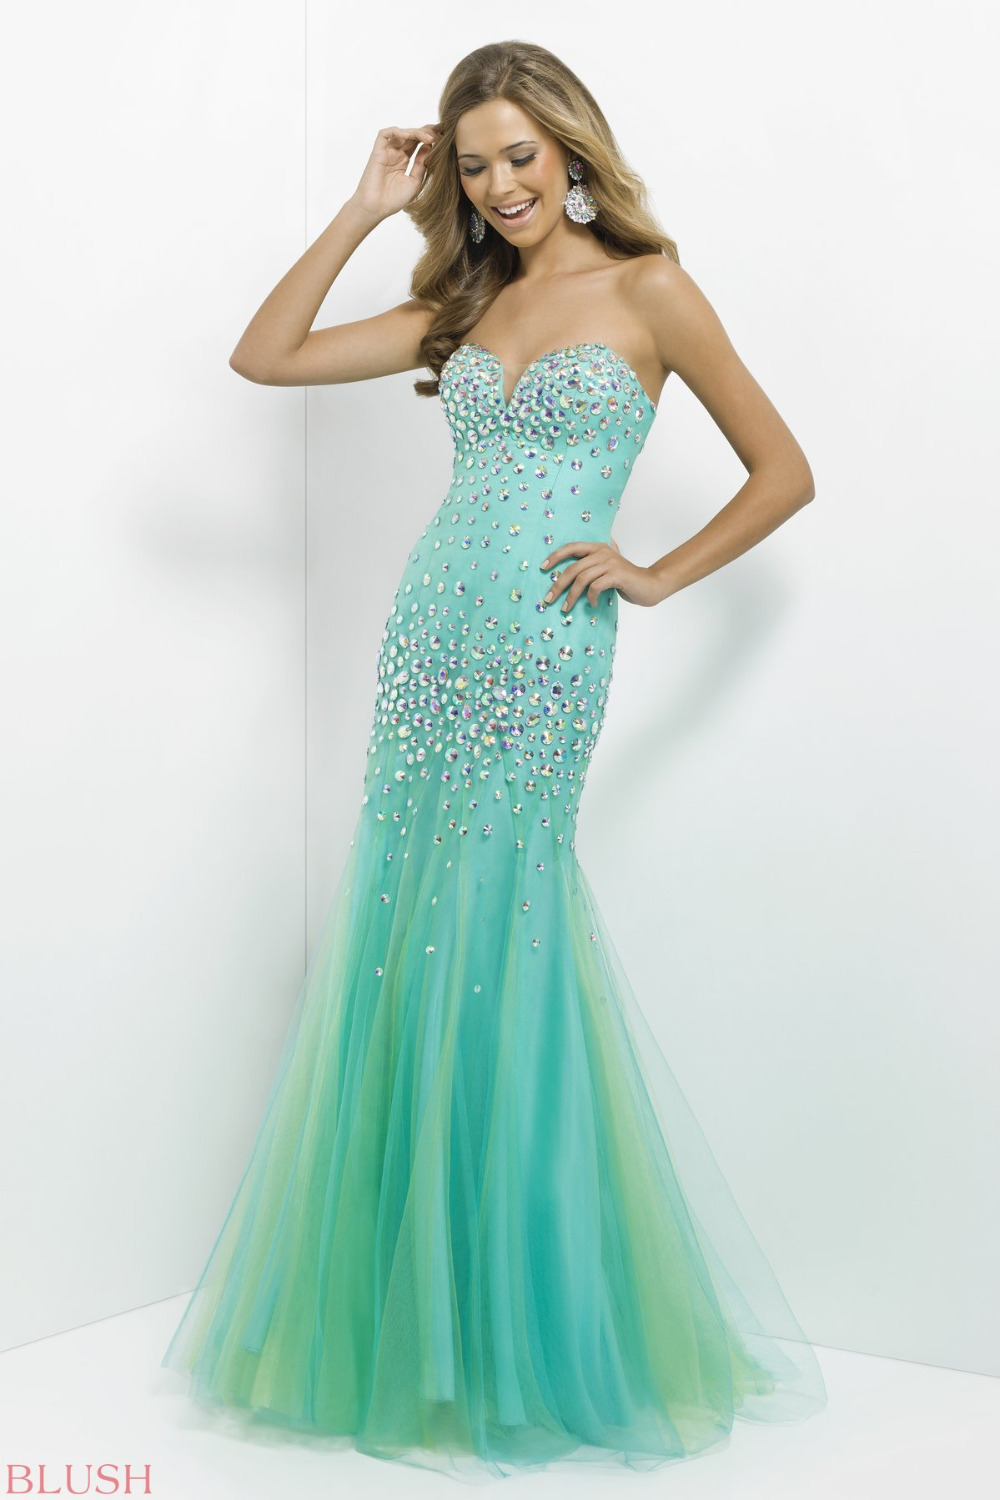 Enchanting Prom Dress Stores In Jackson Ms Embellishment - All ...